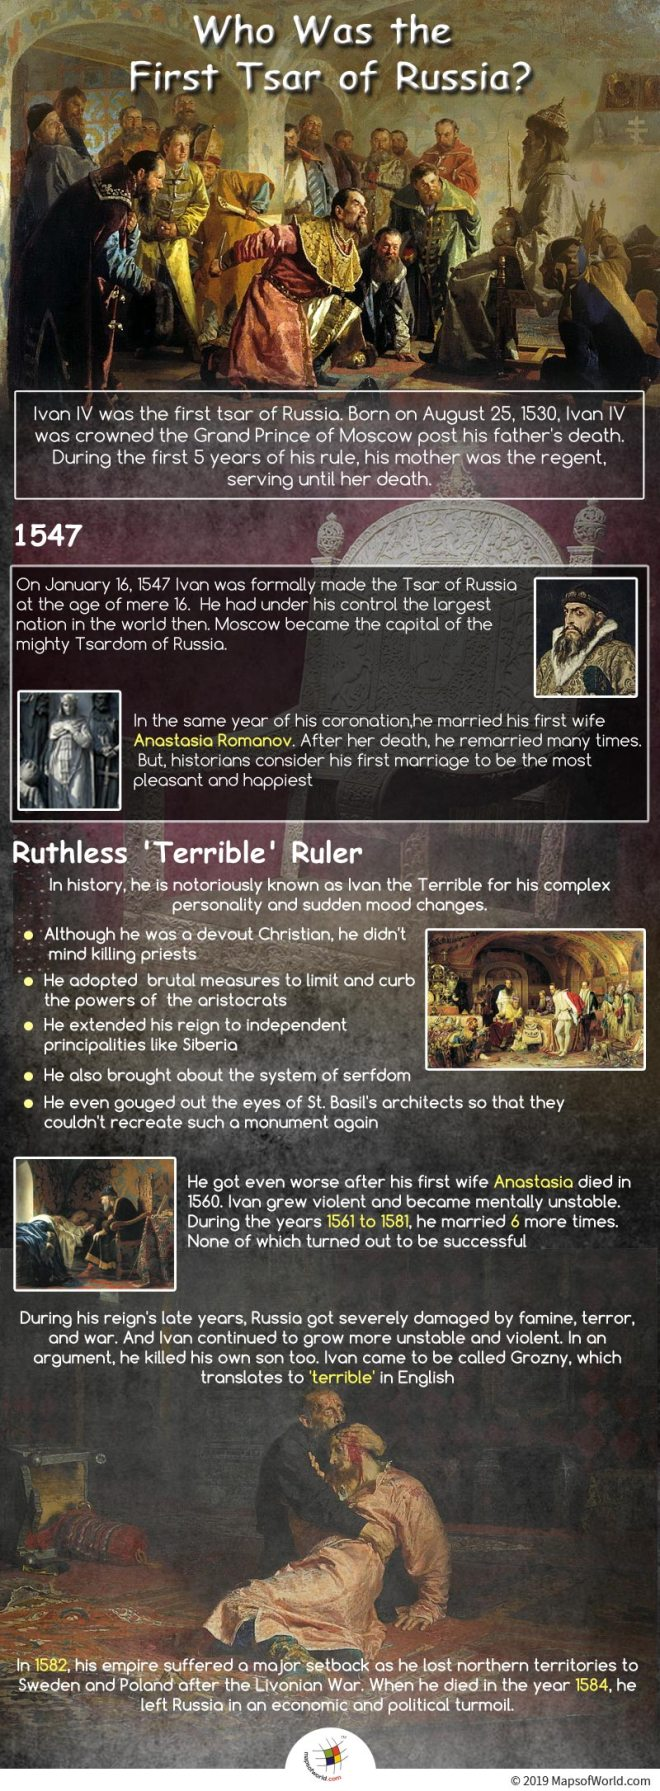 Infographic Giving Details on First Tsar of Russia